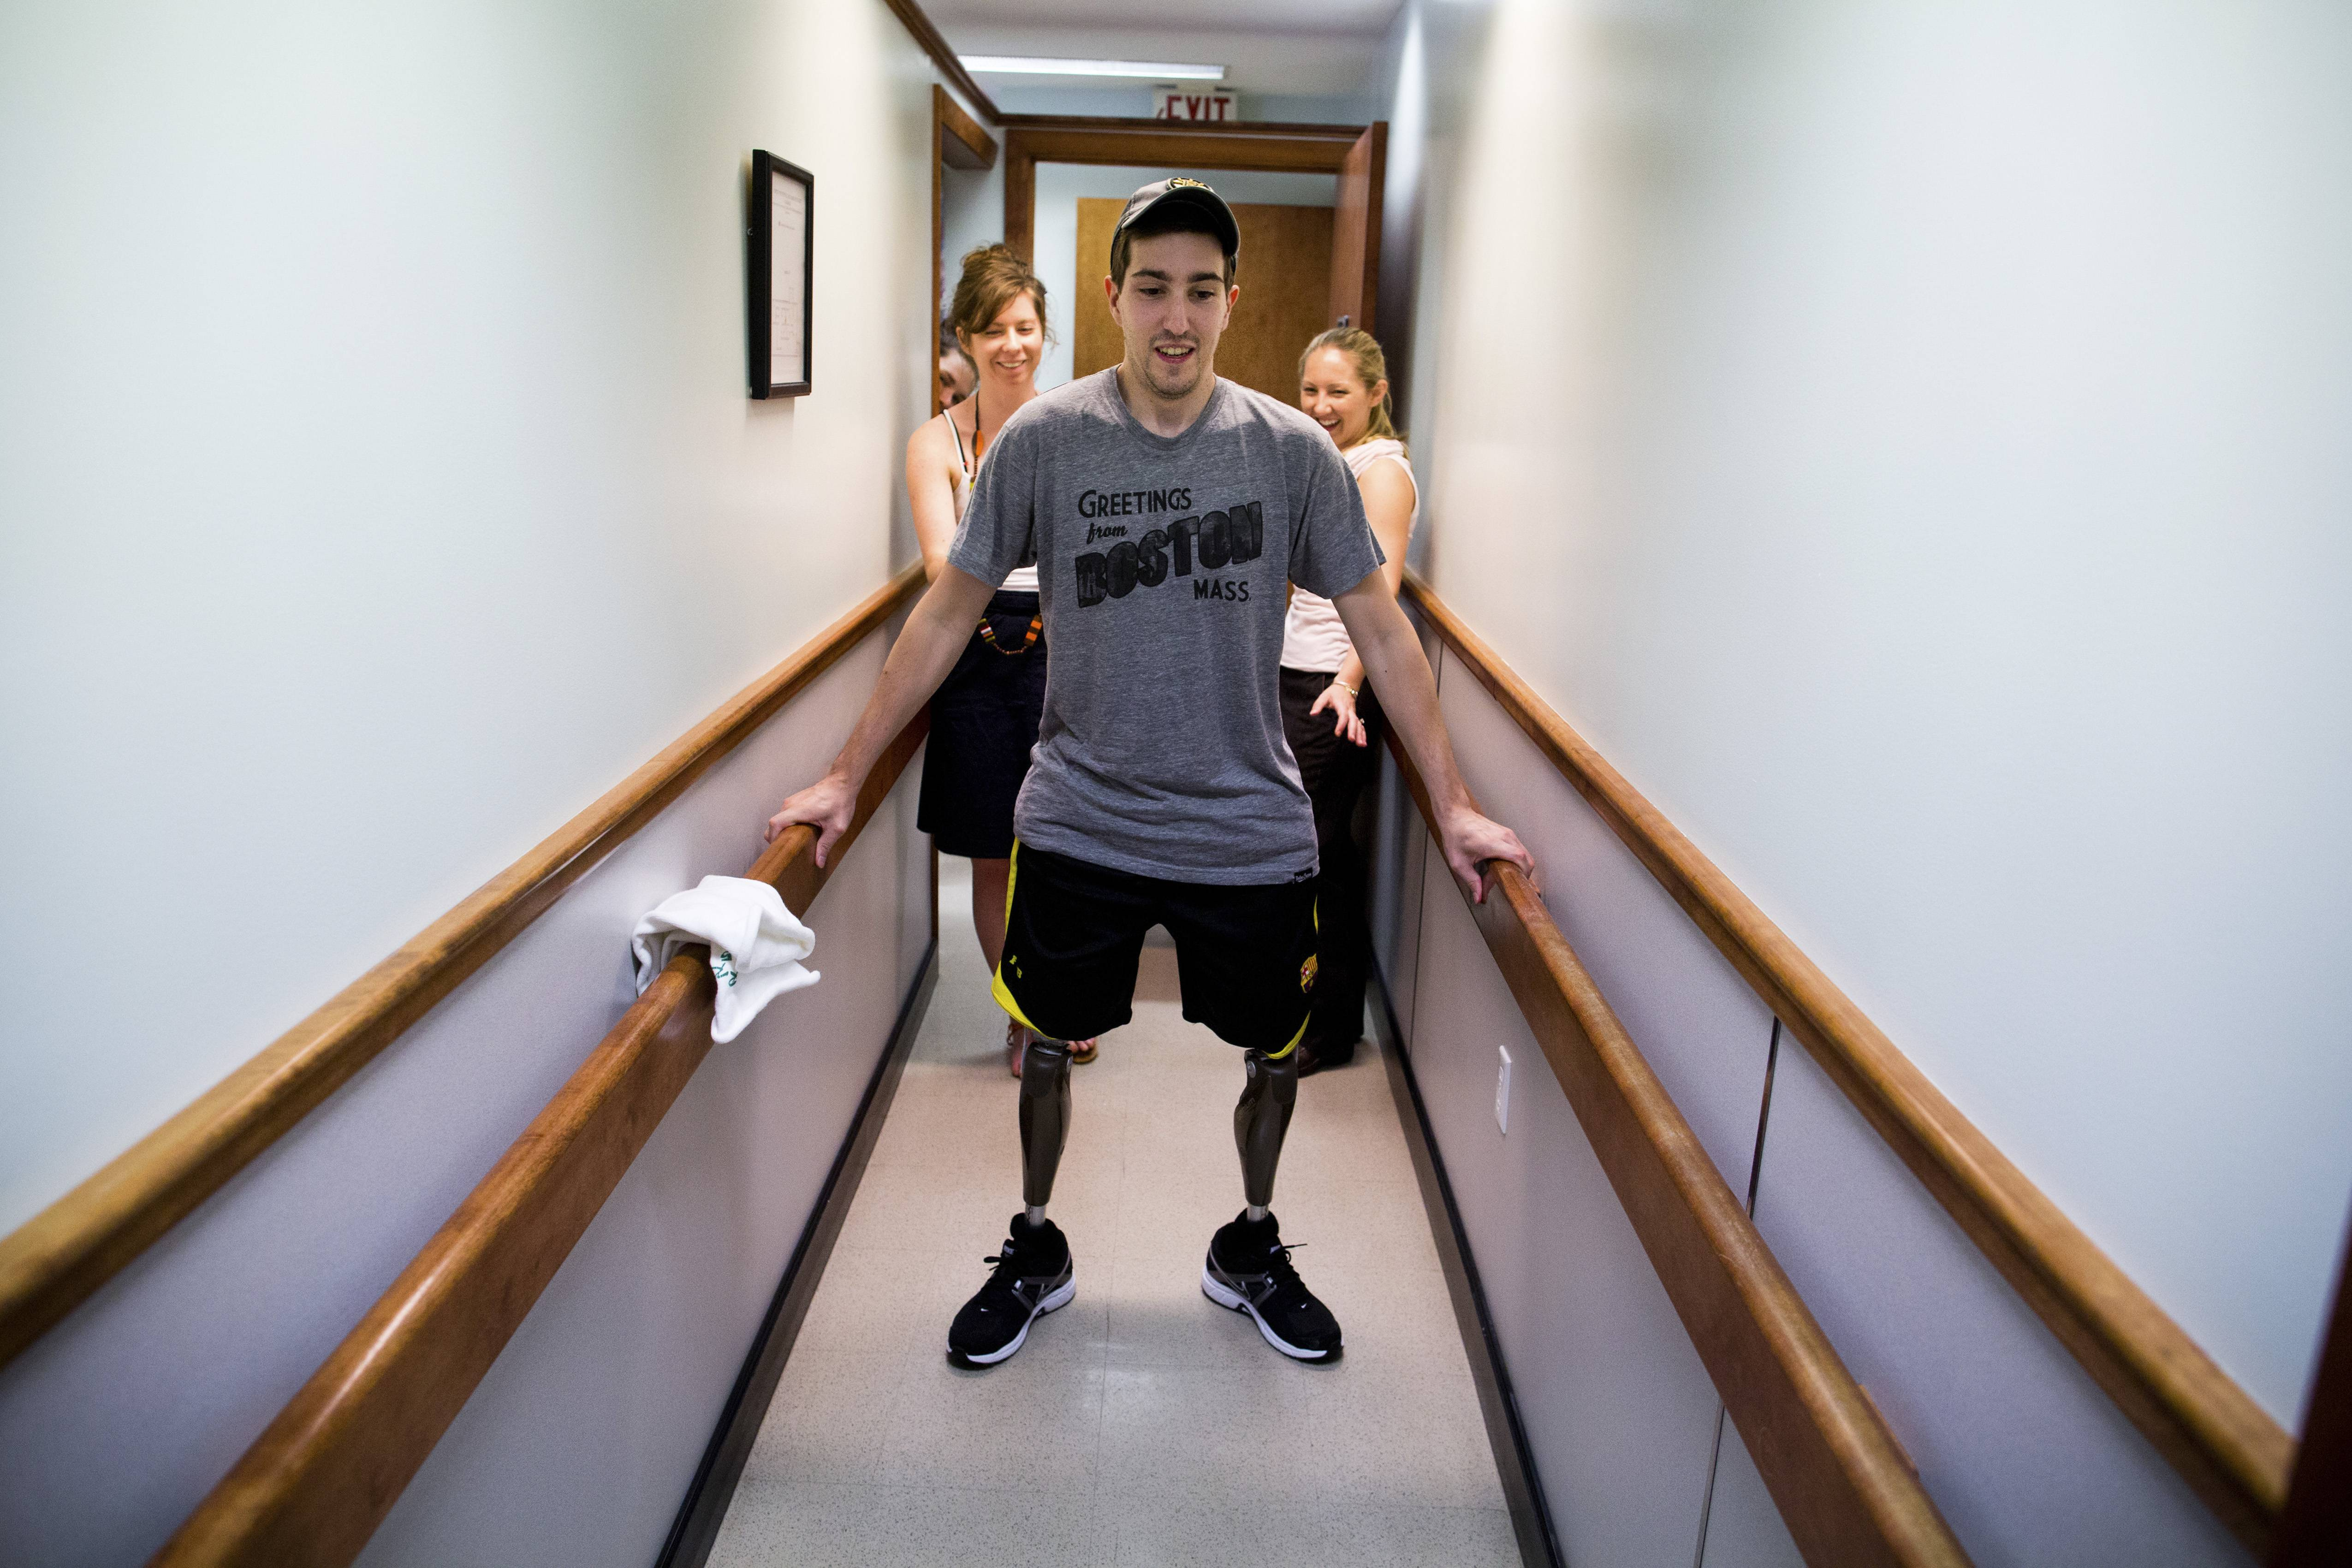 Jeff Bauman, who lost his lower legs in the Boston Marathon bombings, walks on his own for the first time since the marathon at a final fitting for his prosthetic legs. The knees in Bauman's new legs have microprocessors that can be programmed to follow his gait, to swing as he steps. Bauman's girlfriend Erin Hurley, left, and prosthetist Julianne Mason watch from behind.